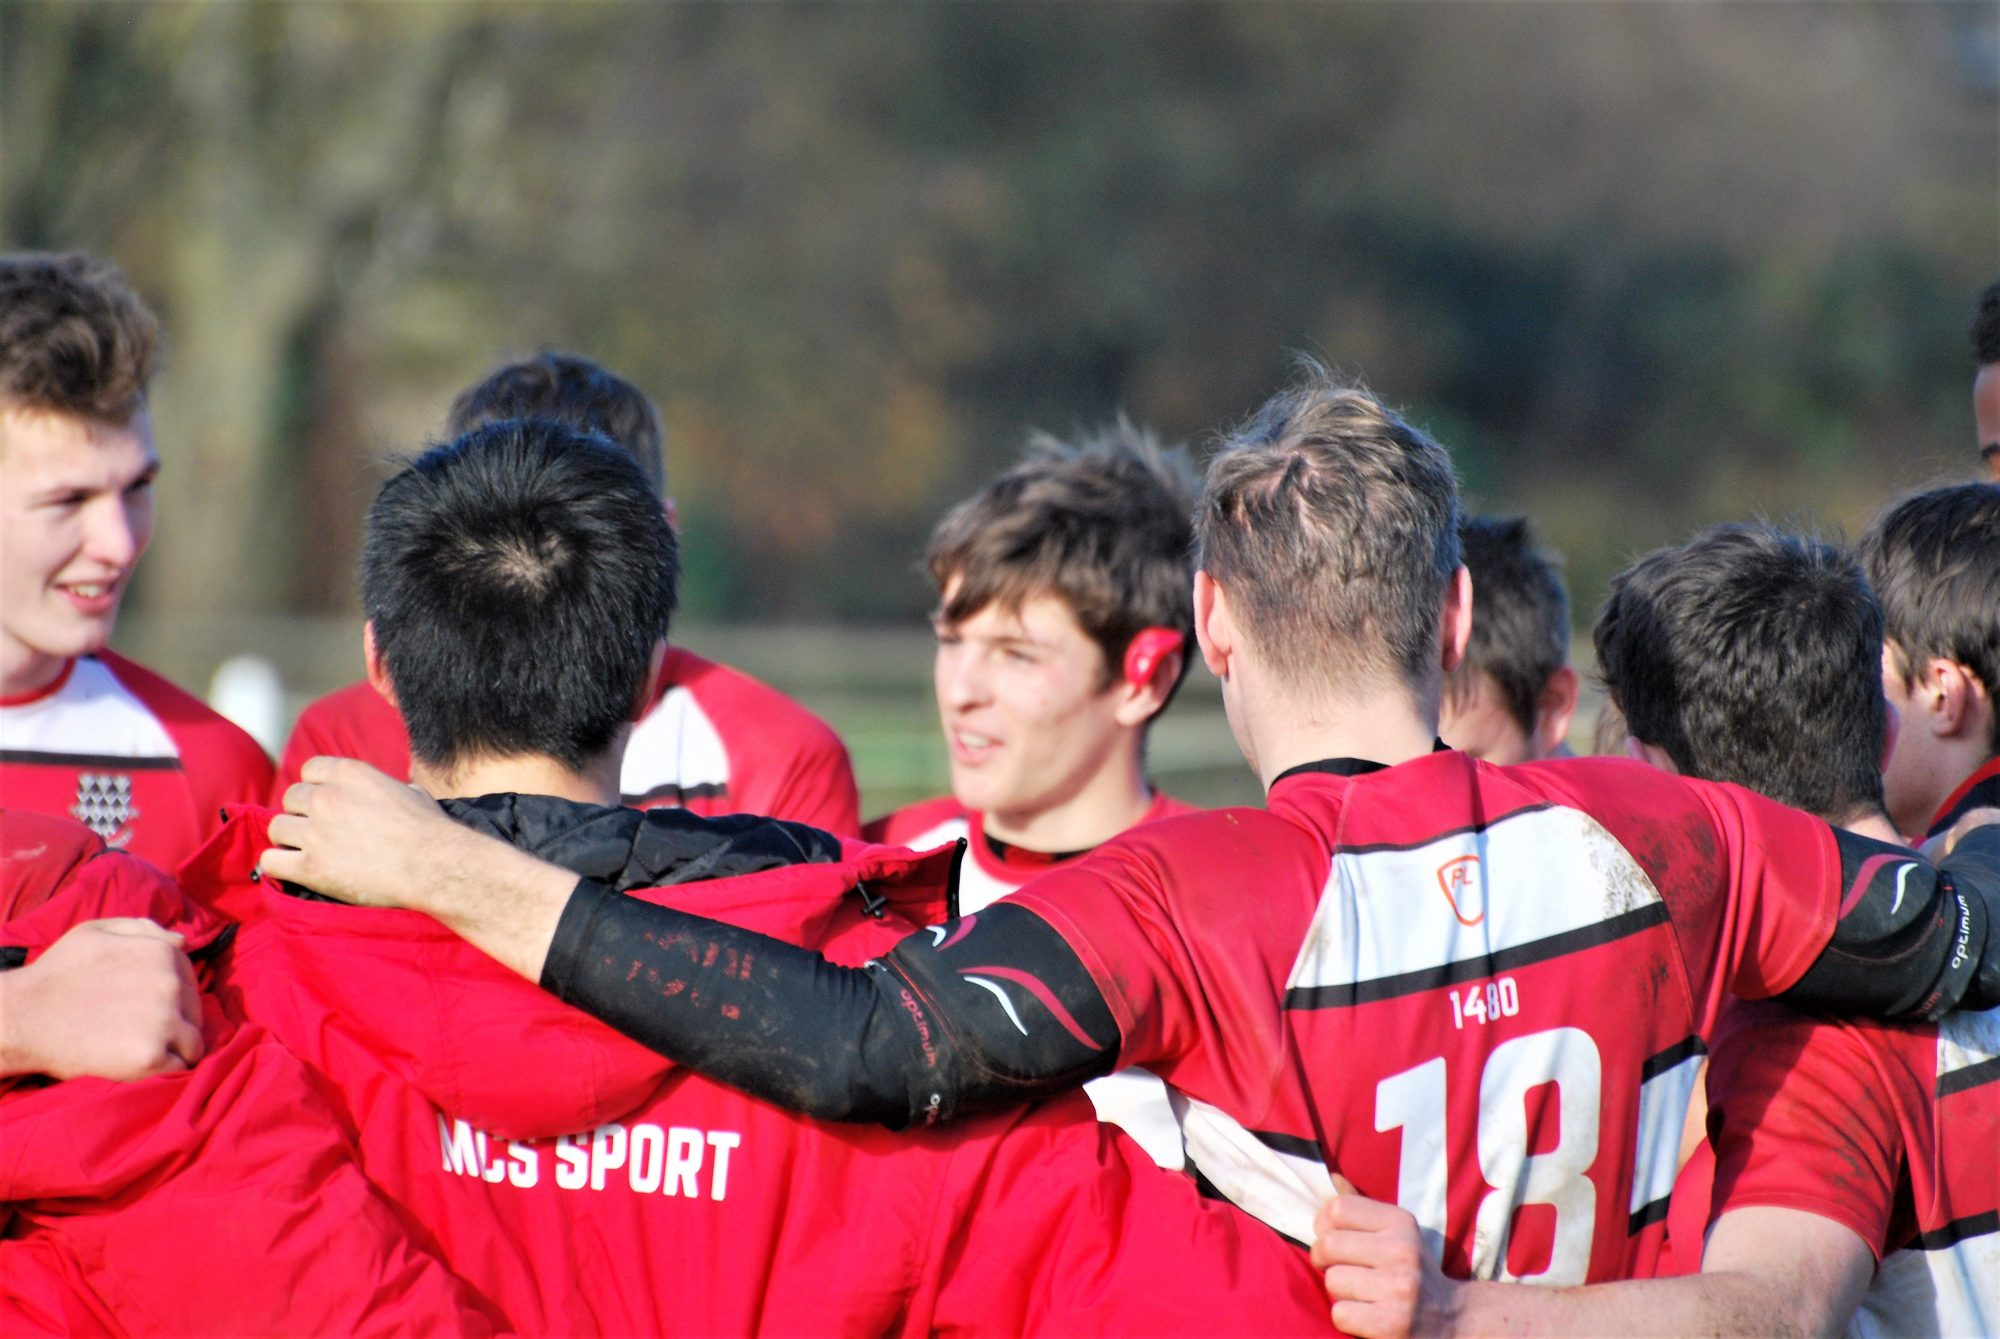 Sixth Form Magdalen College School pupils play rugby